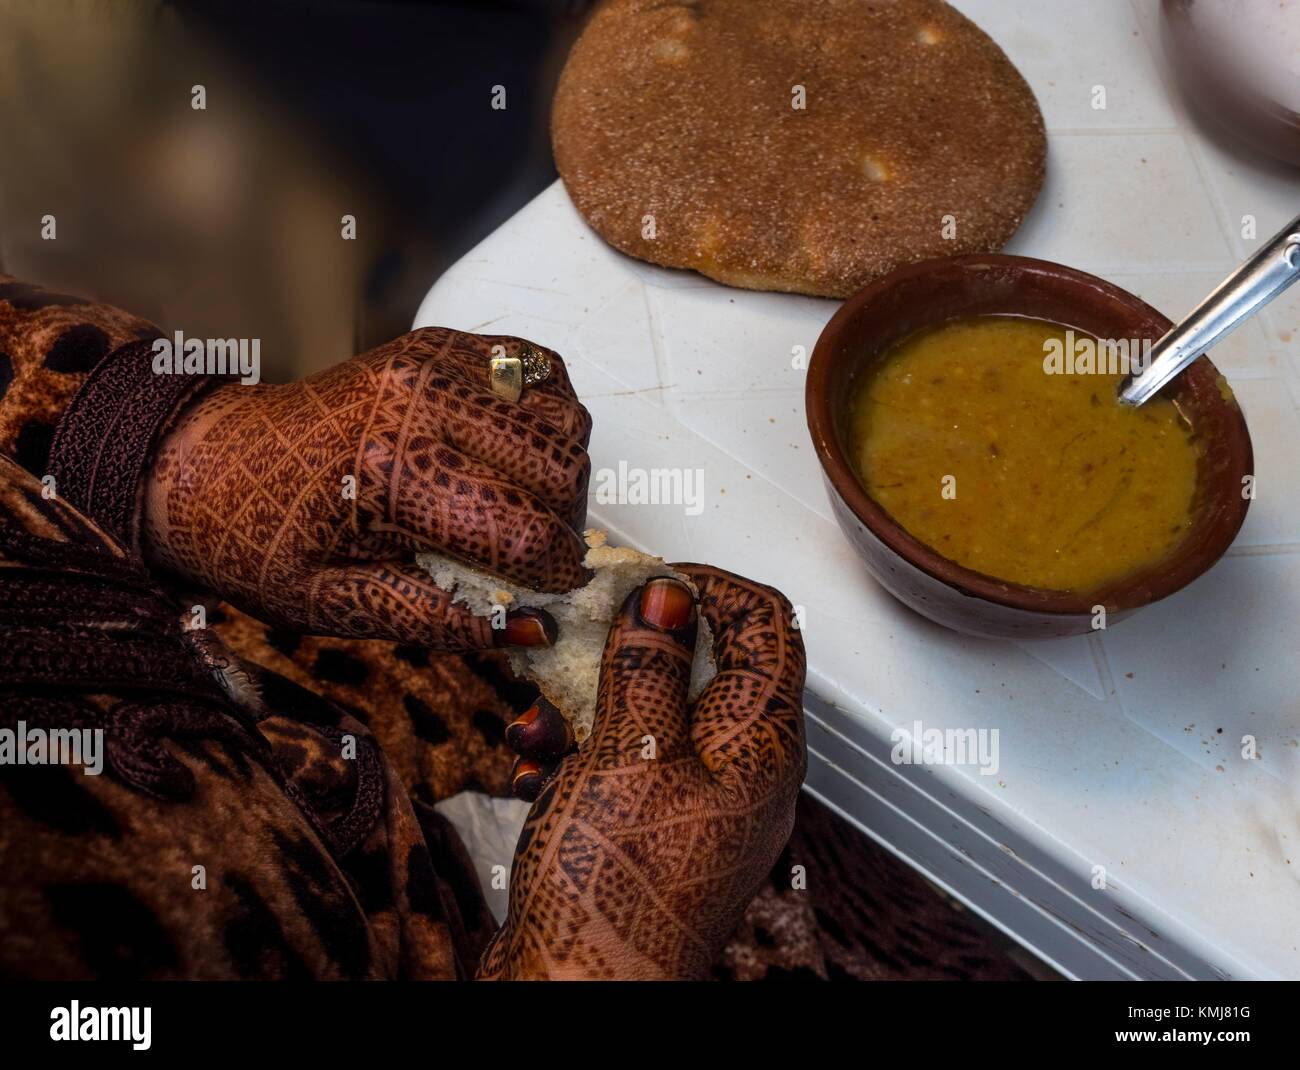 Morocco, Fes, moroccan lady with ''henna painted hands, eating ''Harira'' soup. - Stock Image